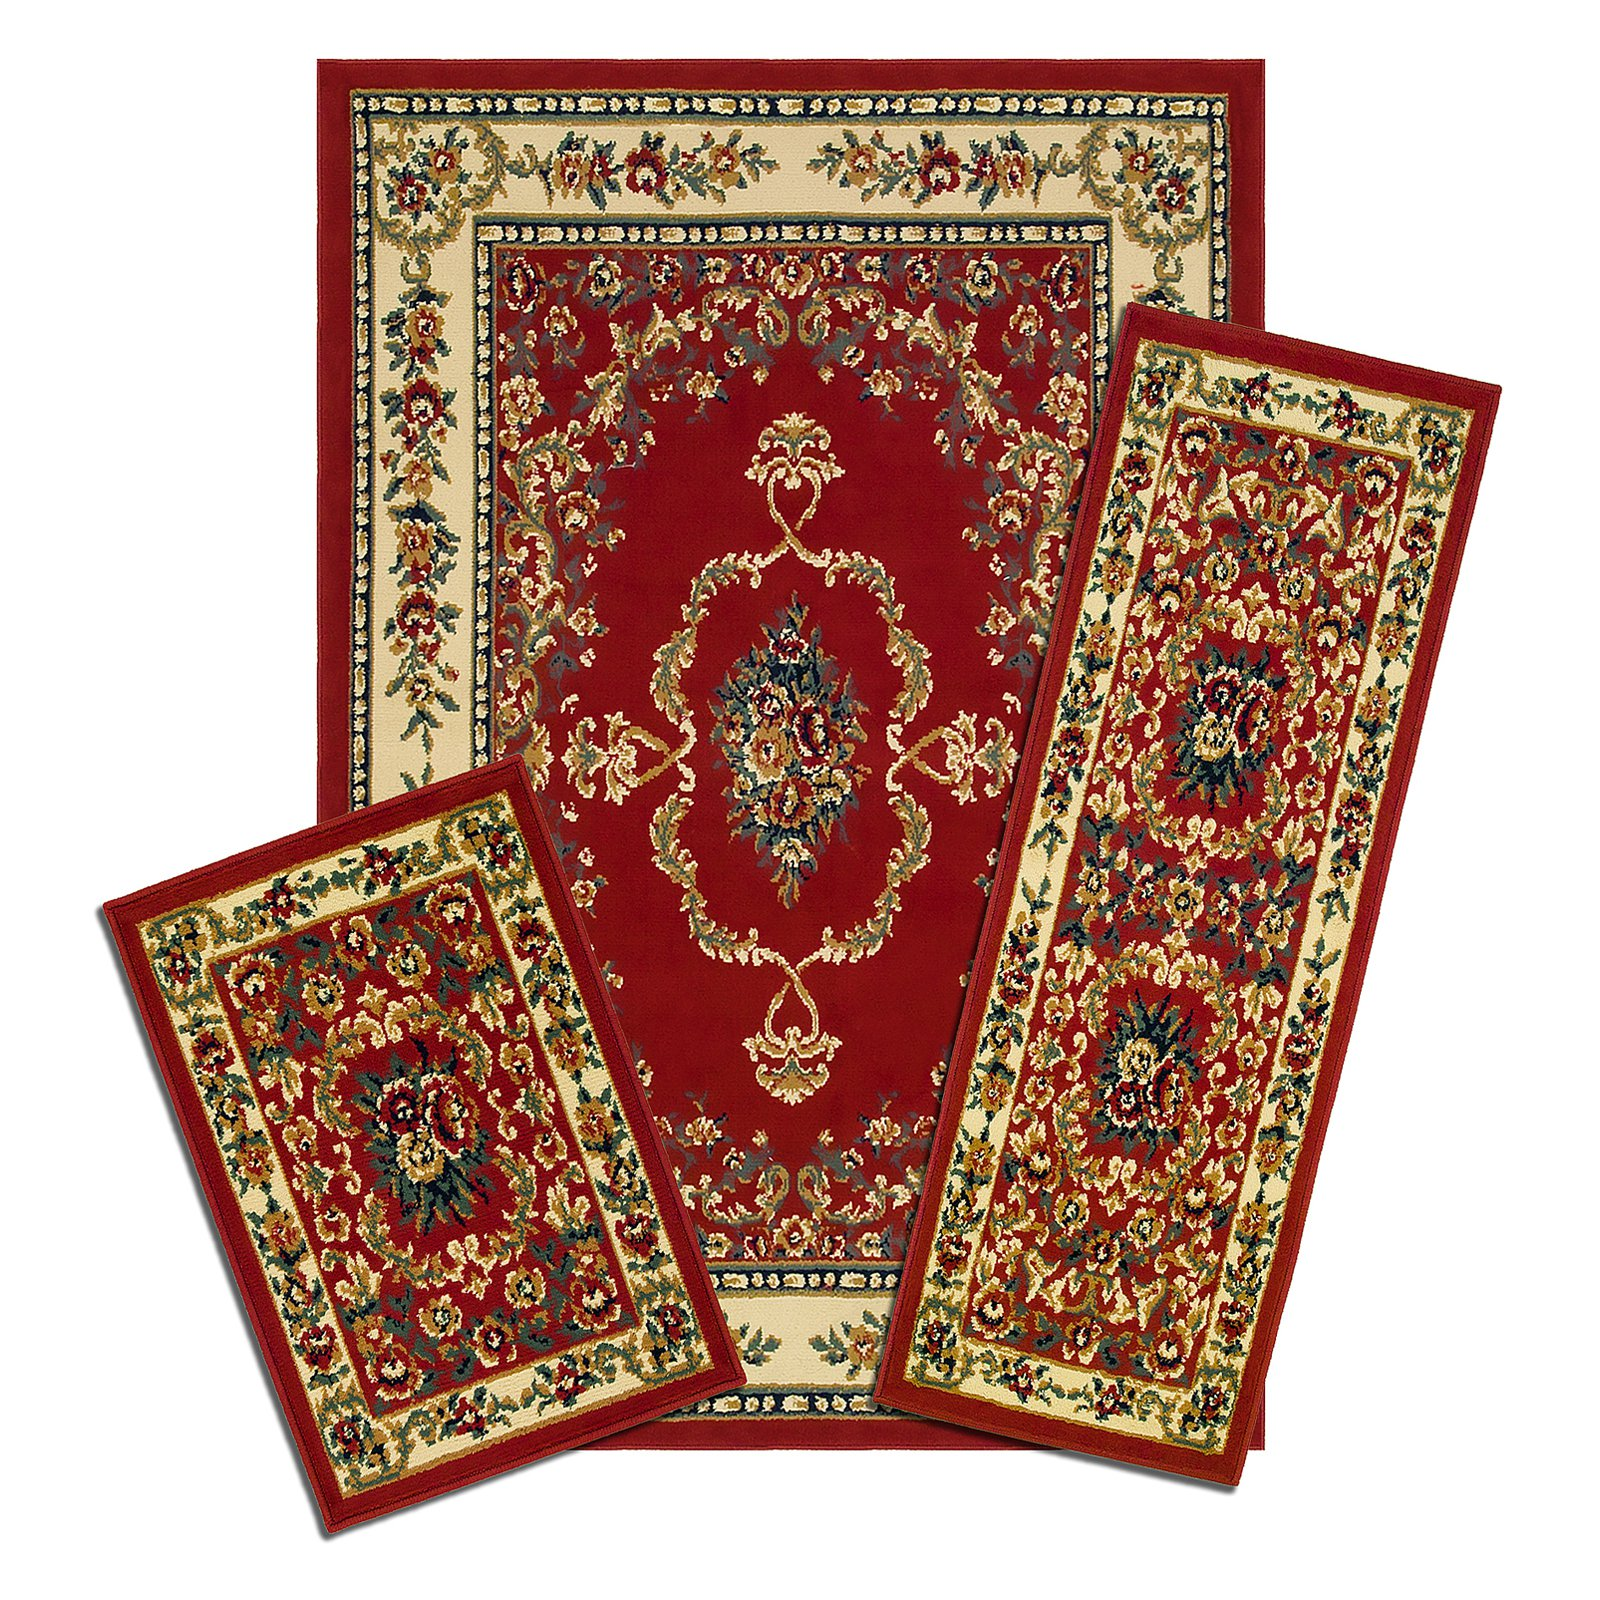 Click here to buy Capri 3 Piece Rug Set, Savonnerie Red by Creative Home.